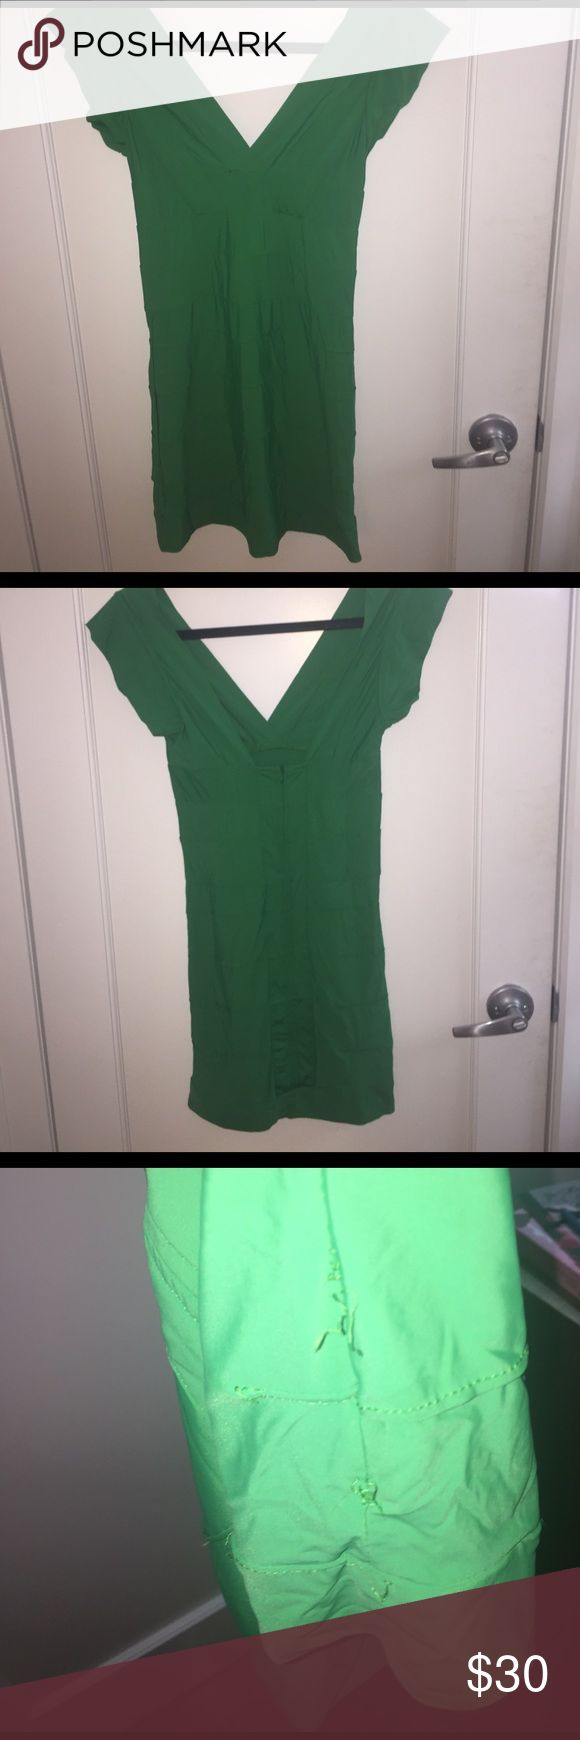 Sexy green bandage dress 🌟 Green emerald short sleeved v neck bandage dress. Minor wear as shown in photos on the side Seam but otherwise good condition. Just needs to be ironed. Seriously the prettiest green and looks even better on.  Back zipper closure.  All offers are considered and I offer a bundle discount if you purchase more than one item 😘 Urban Outfitters Dresses Mini